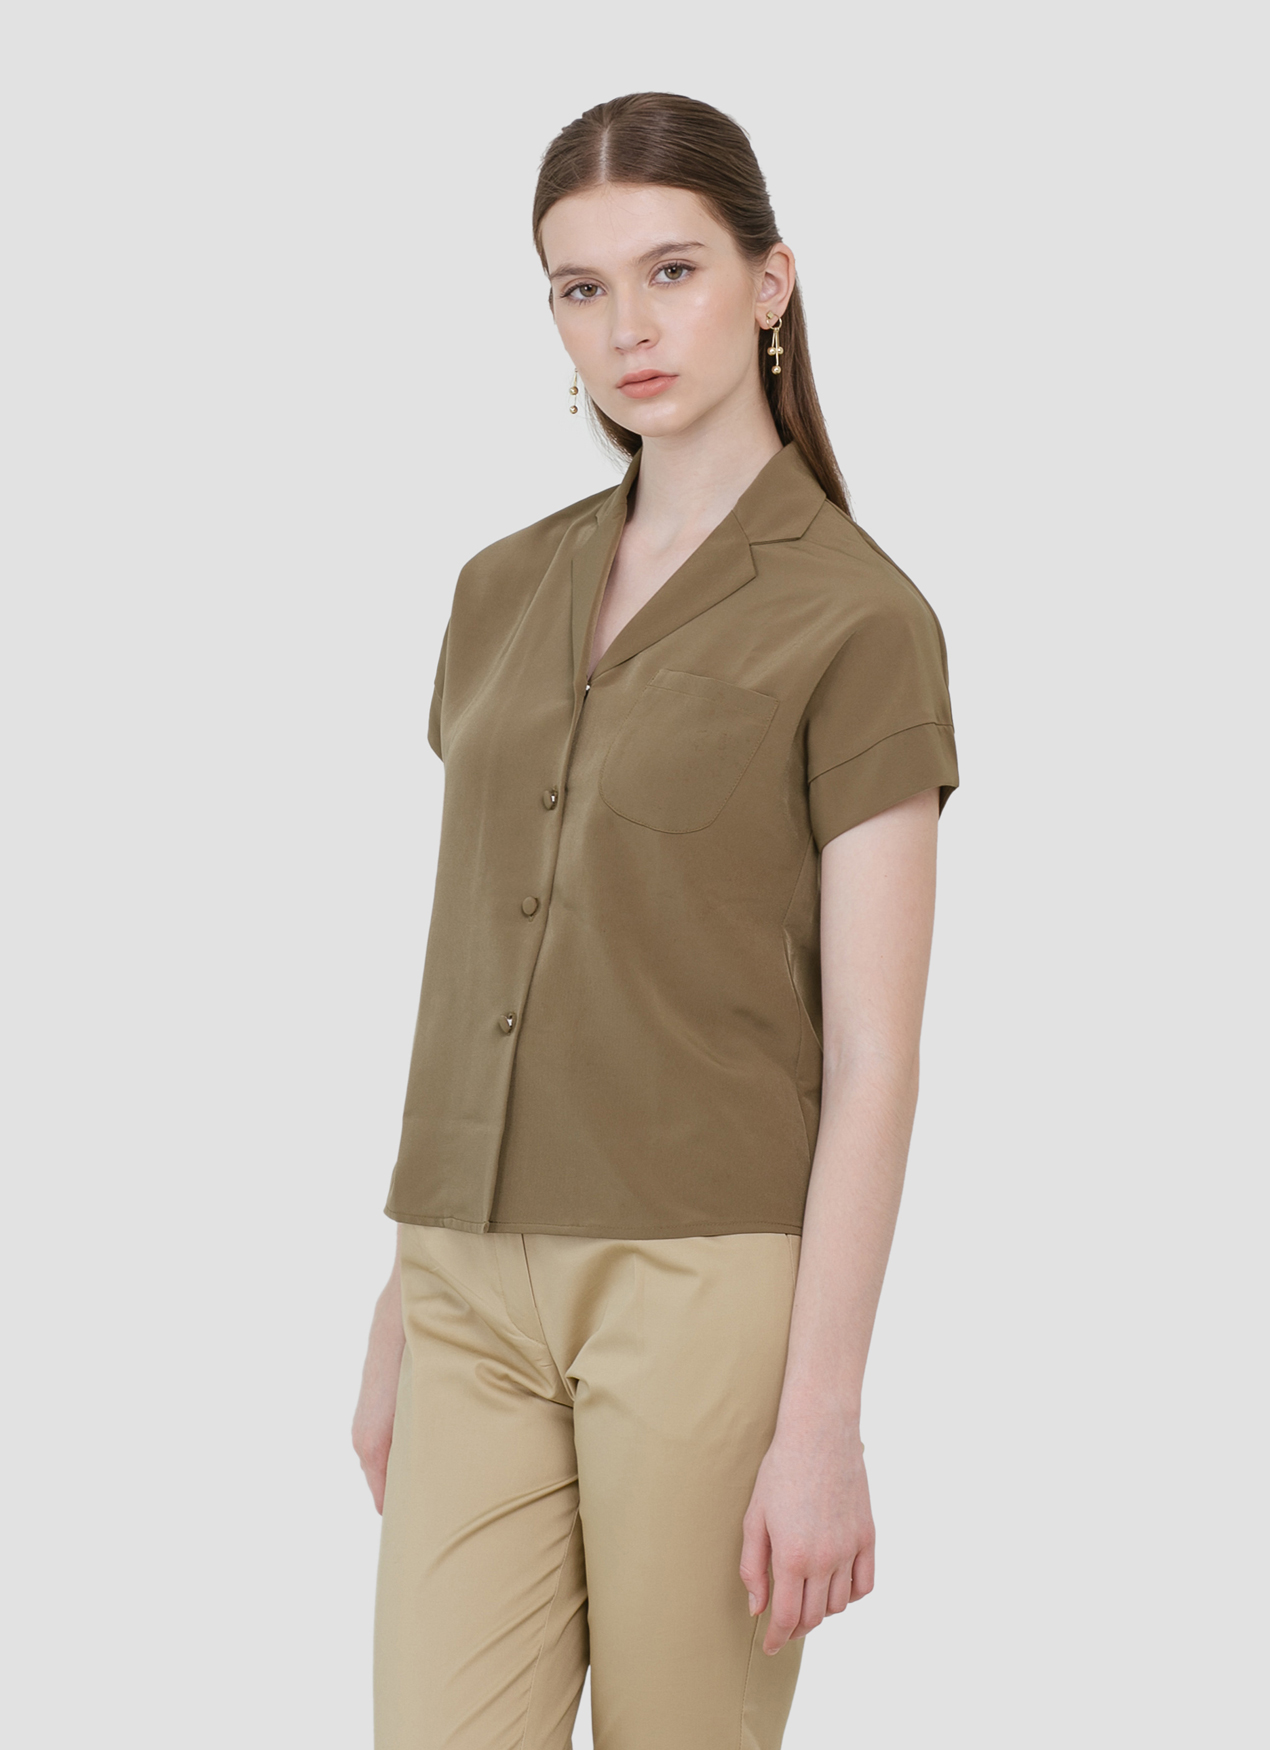 CLOTH INC Myra Lapel Shirt - Olive